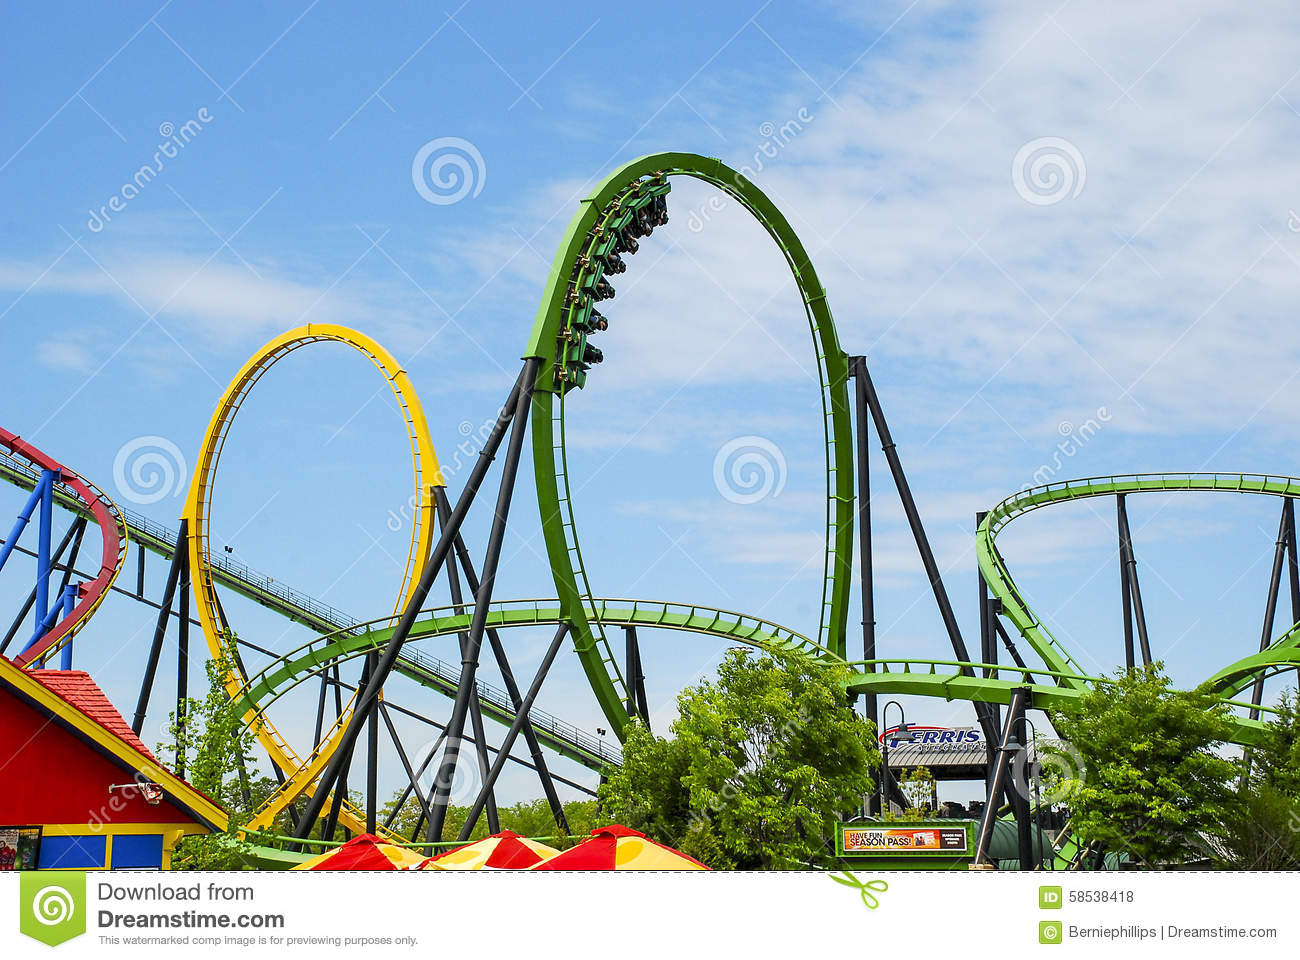 how to draw a roller coaster loop